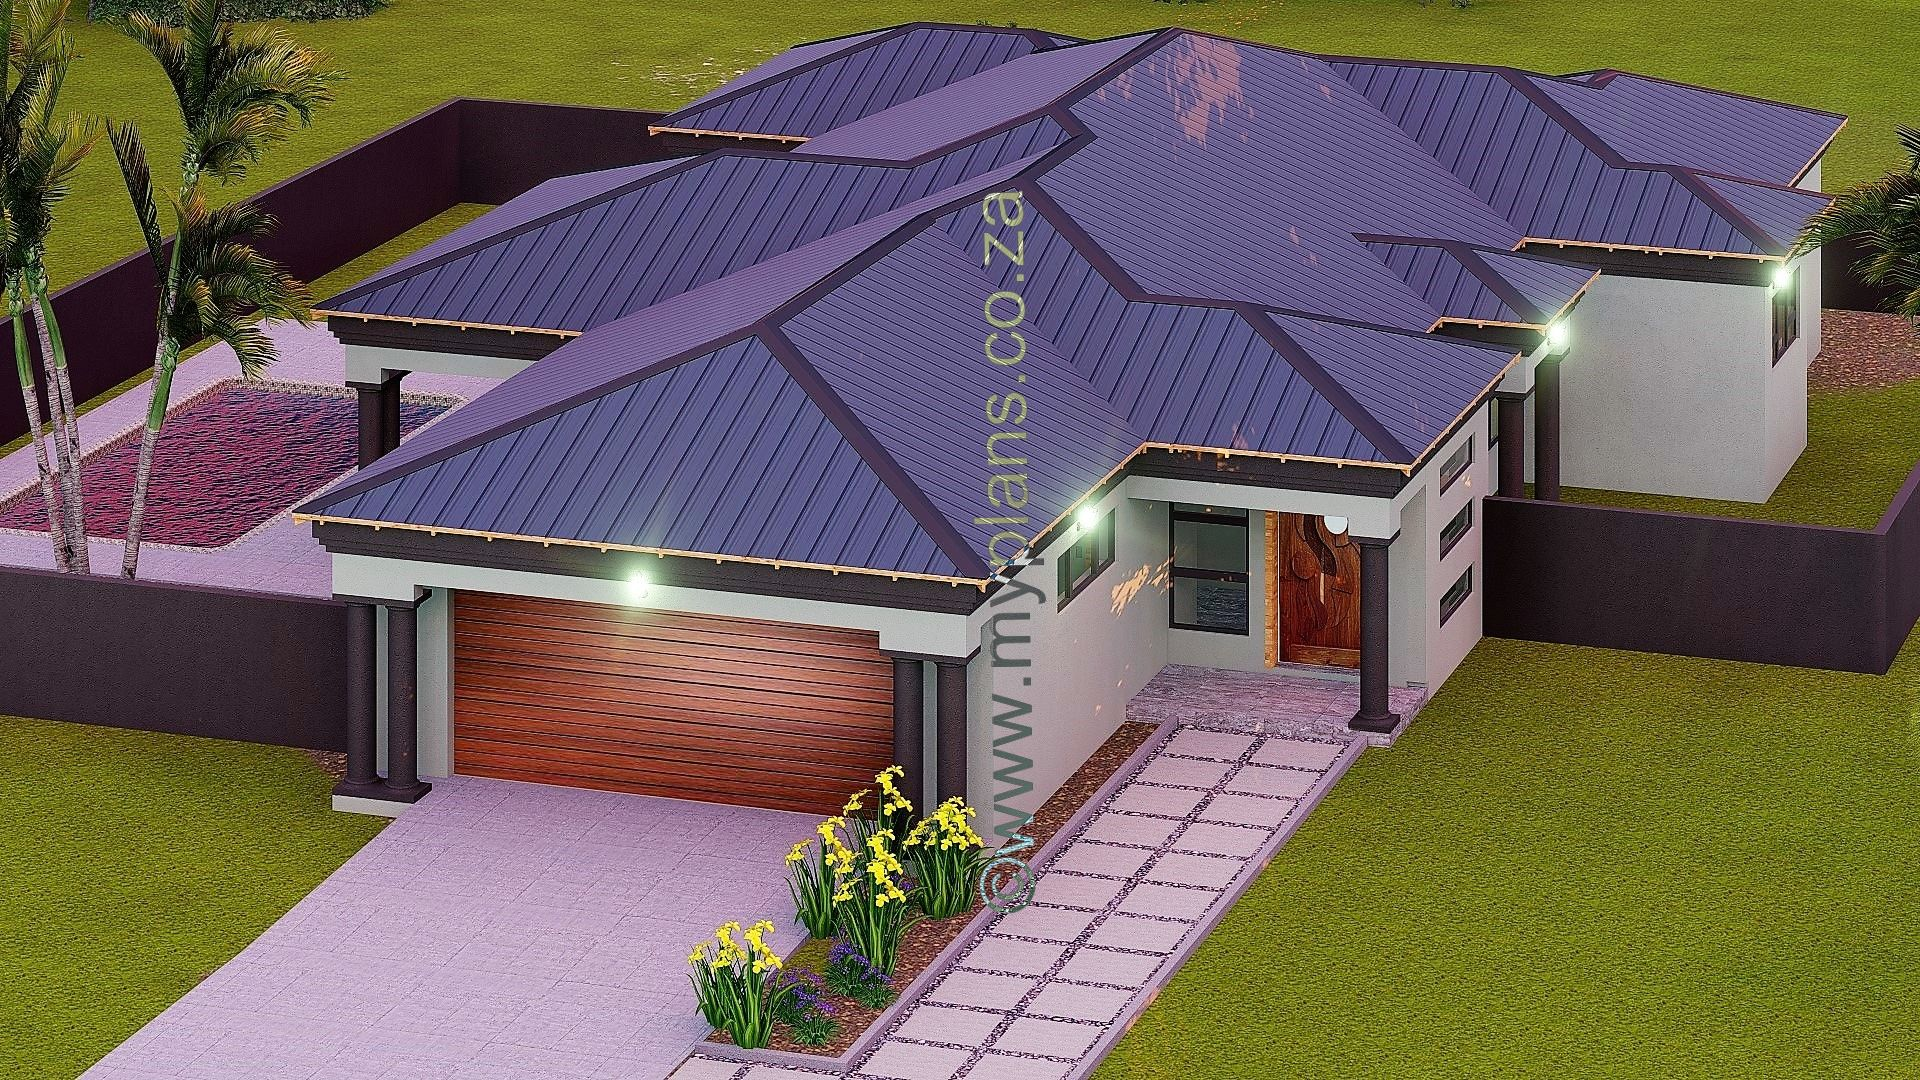 3 Bedroom House Plan Bla 074s House Plans South Africa Bedroom House Plans Bungalow House Plans